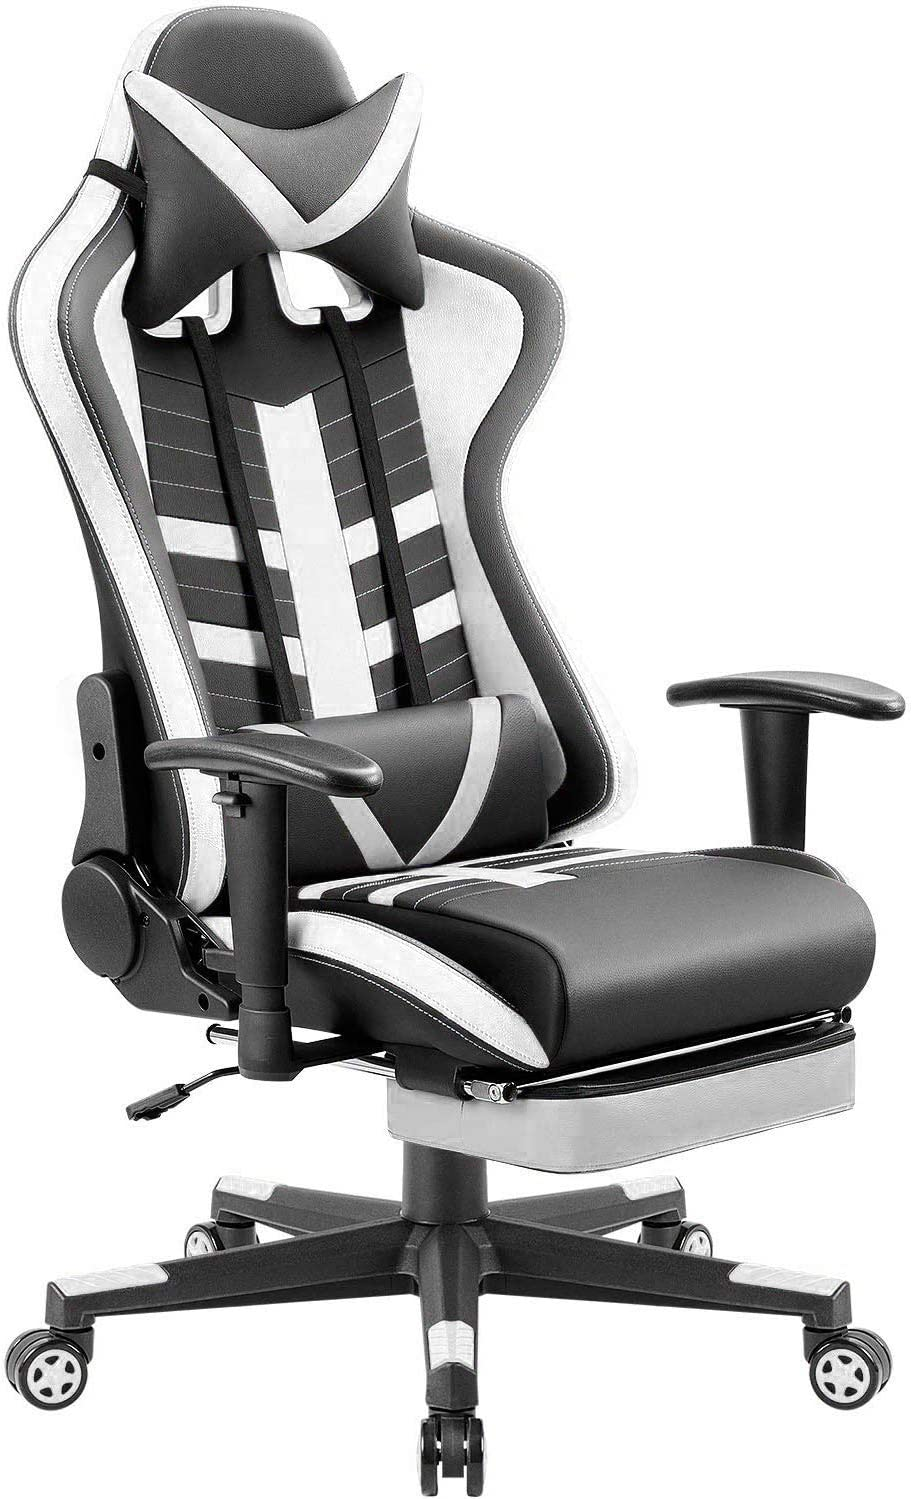 Homall Footrest Racing Style Computer Gaming Chair, White